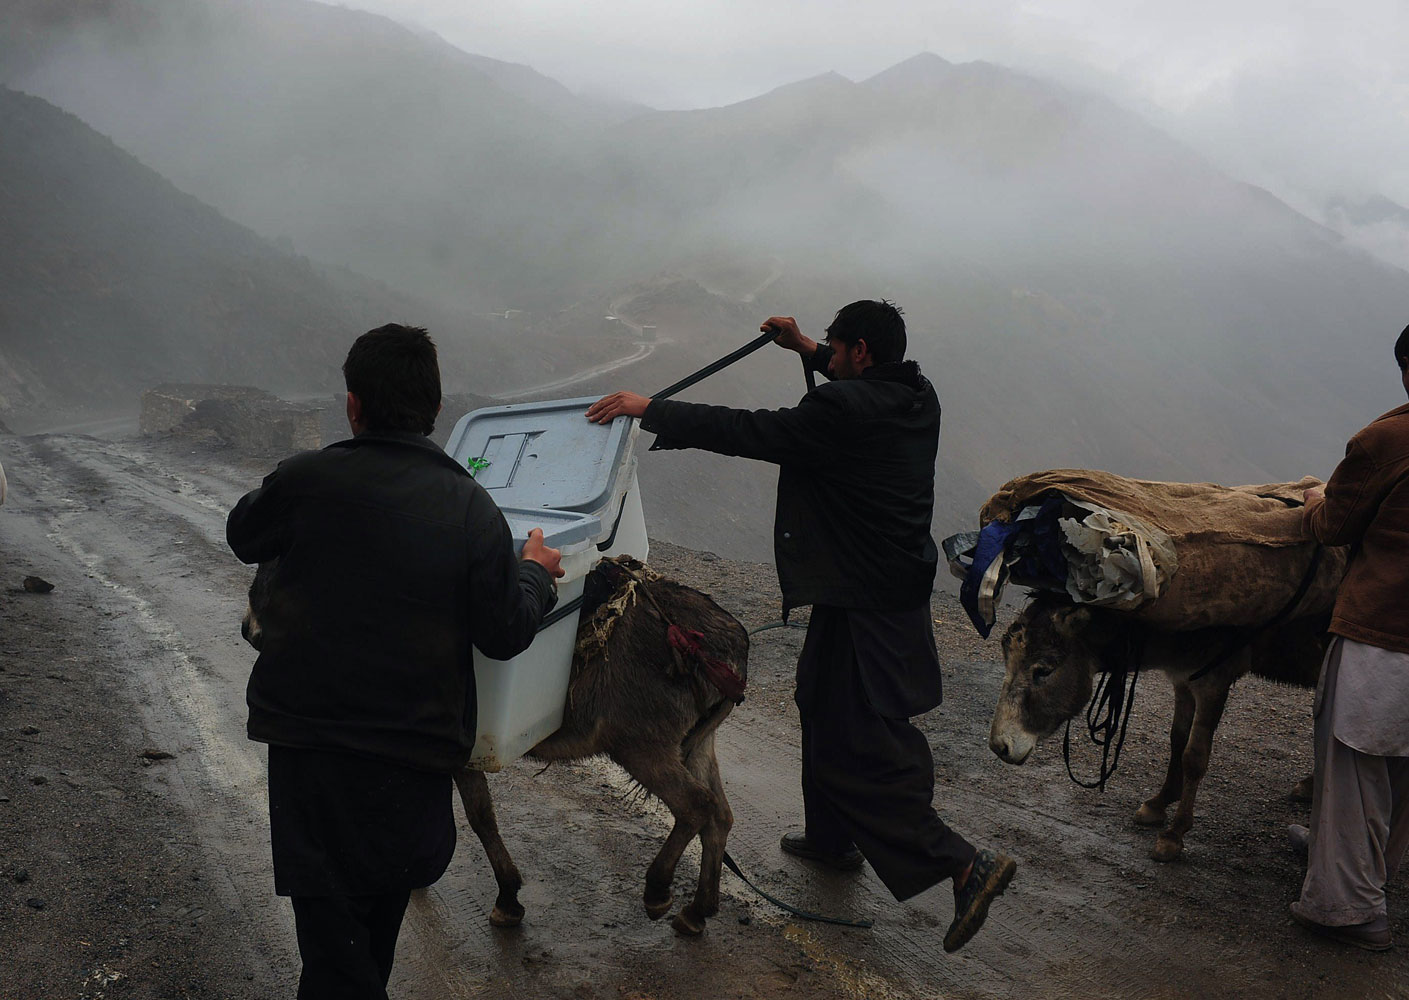 Afghan villagers adjust election materials on the back of donkeys as they head back to their village along a country road high in the mountains in the Shutul District in northern Afghanistan, April 4, 2014.